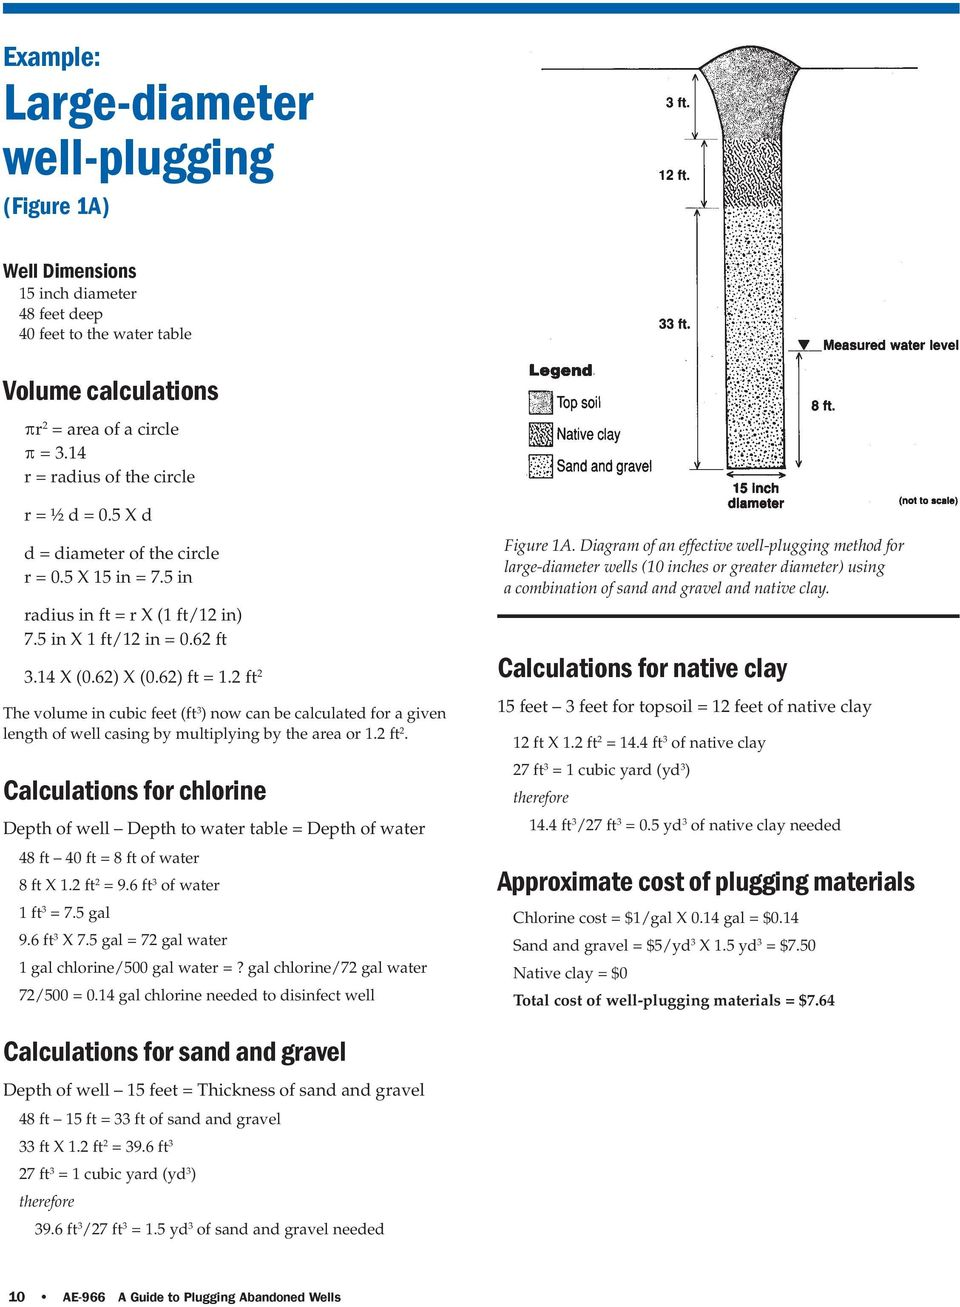 2 ft 2 The volume in cubic feet (ft 3 ) now can be calculated for a given length of well casing by multiplying by the area or 1.2 ft 2. Calculations for chlorine Depth of well Depth to water table = Depth of water 48 ft 40 ft = 8 ft of water 8 ft X 1.